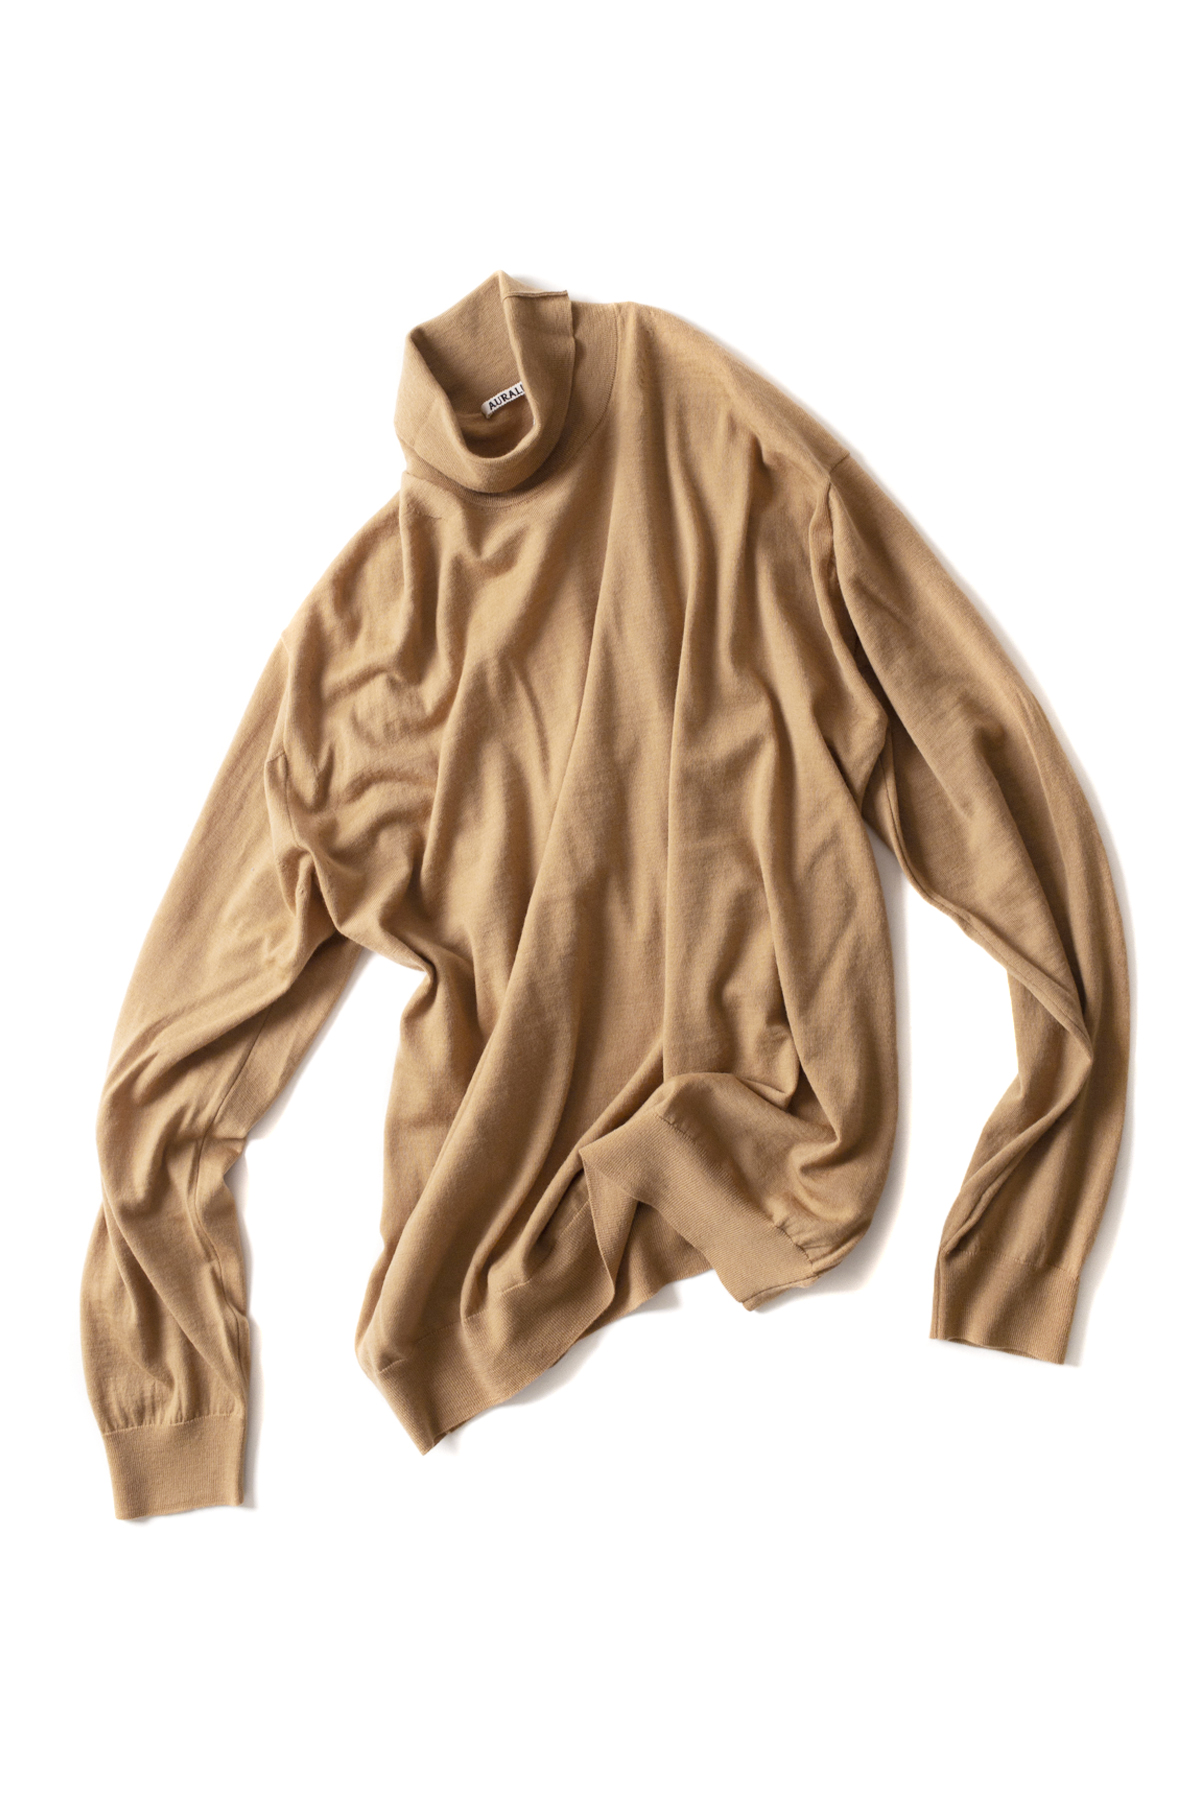 Auralee : Wool Cashmere High Gauge Knit Turtle Nack (Beige)